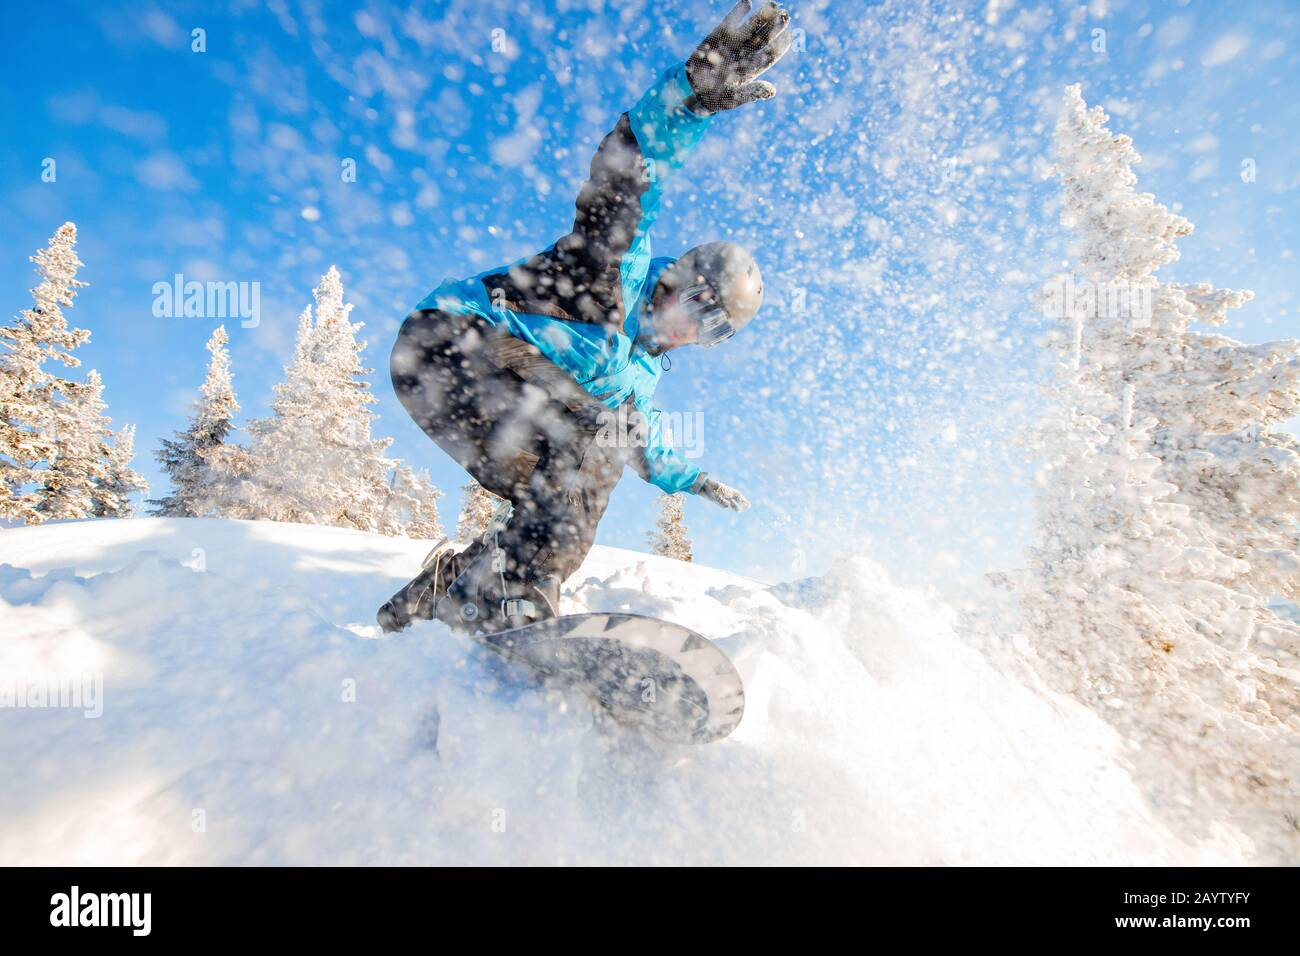 Active man snowboarder riding on slope during sunny day in mountains. Dust snow forest Stock Photo